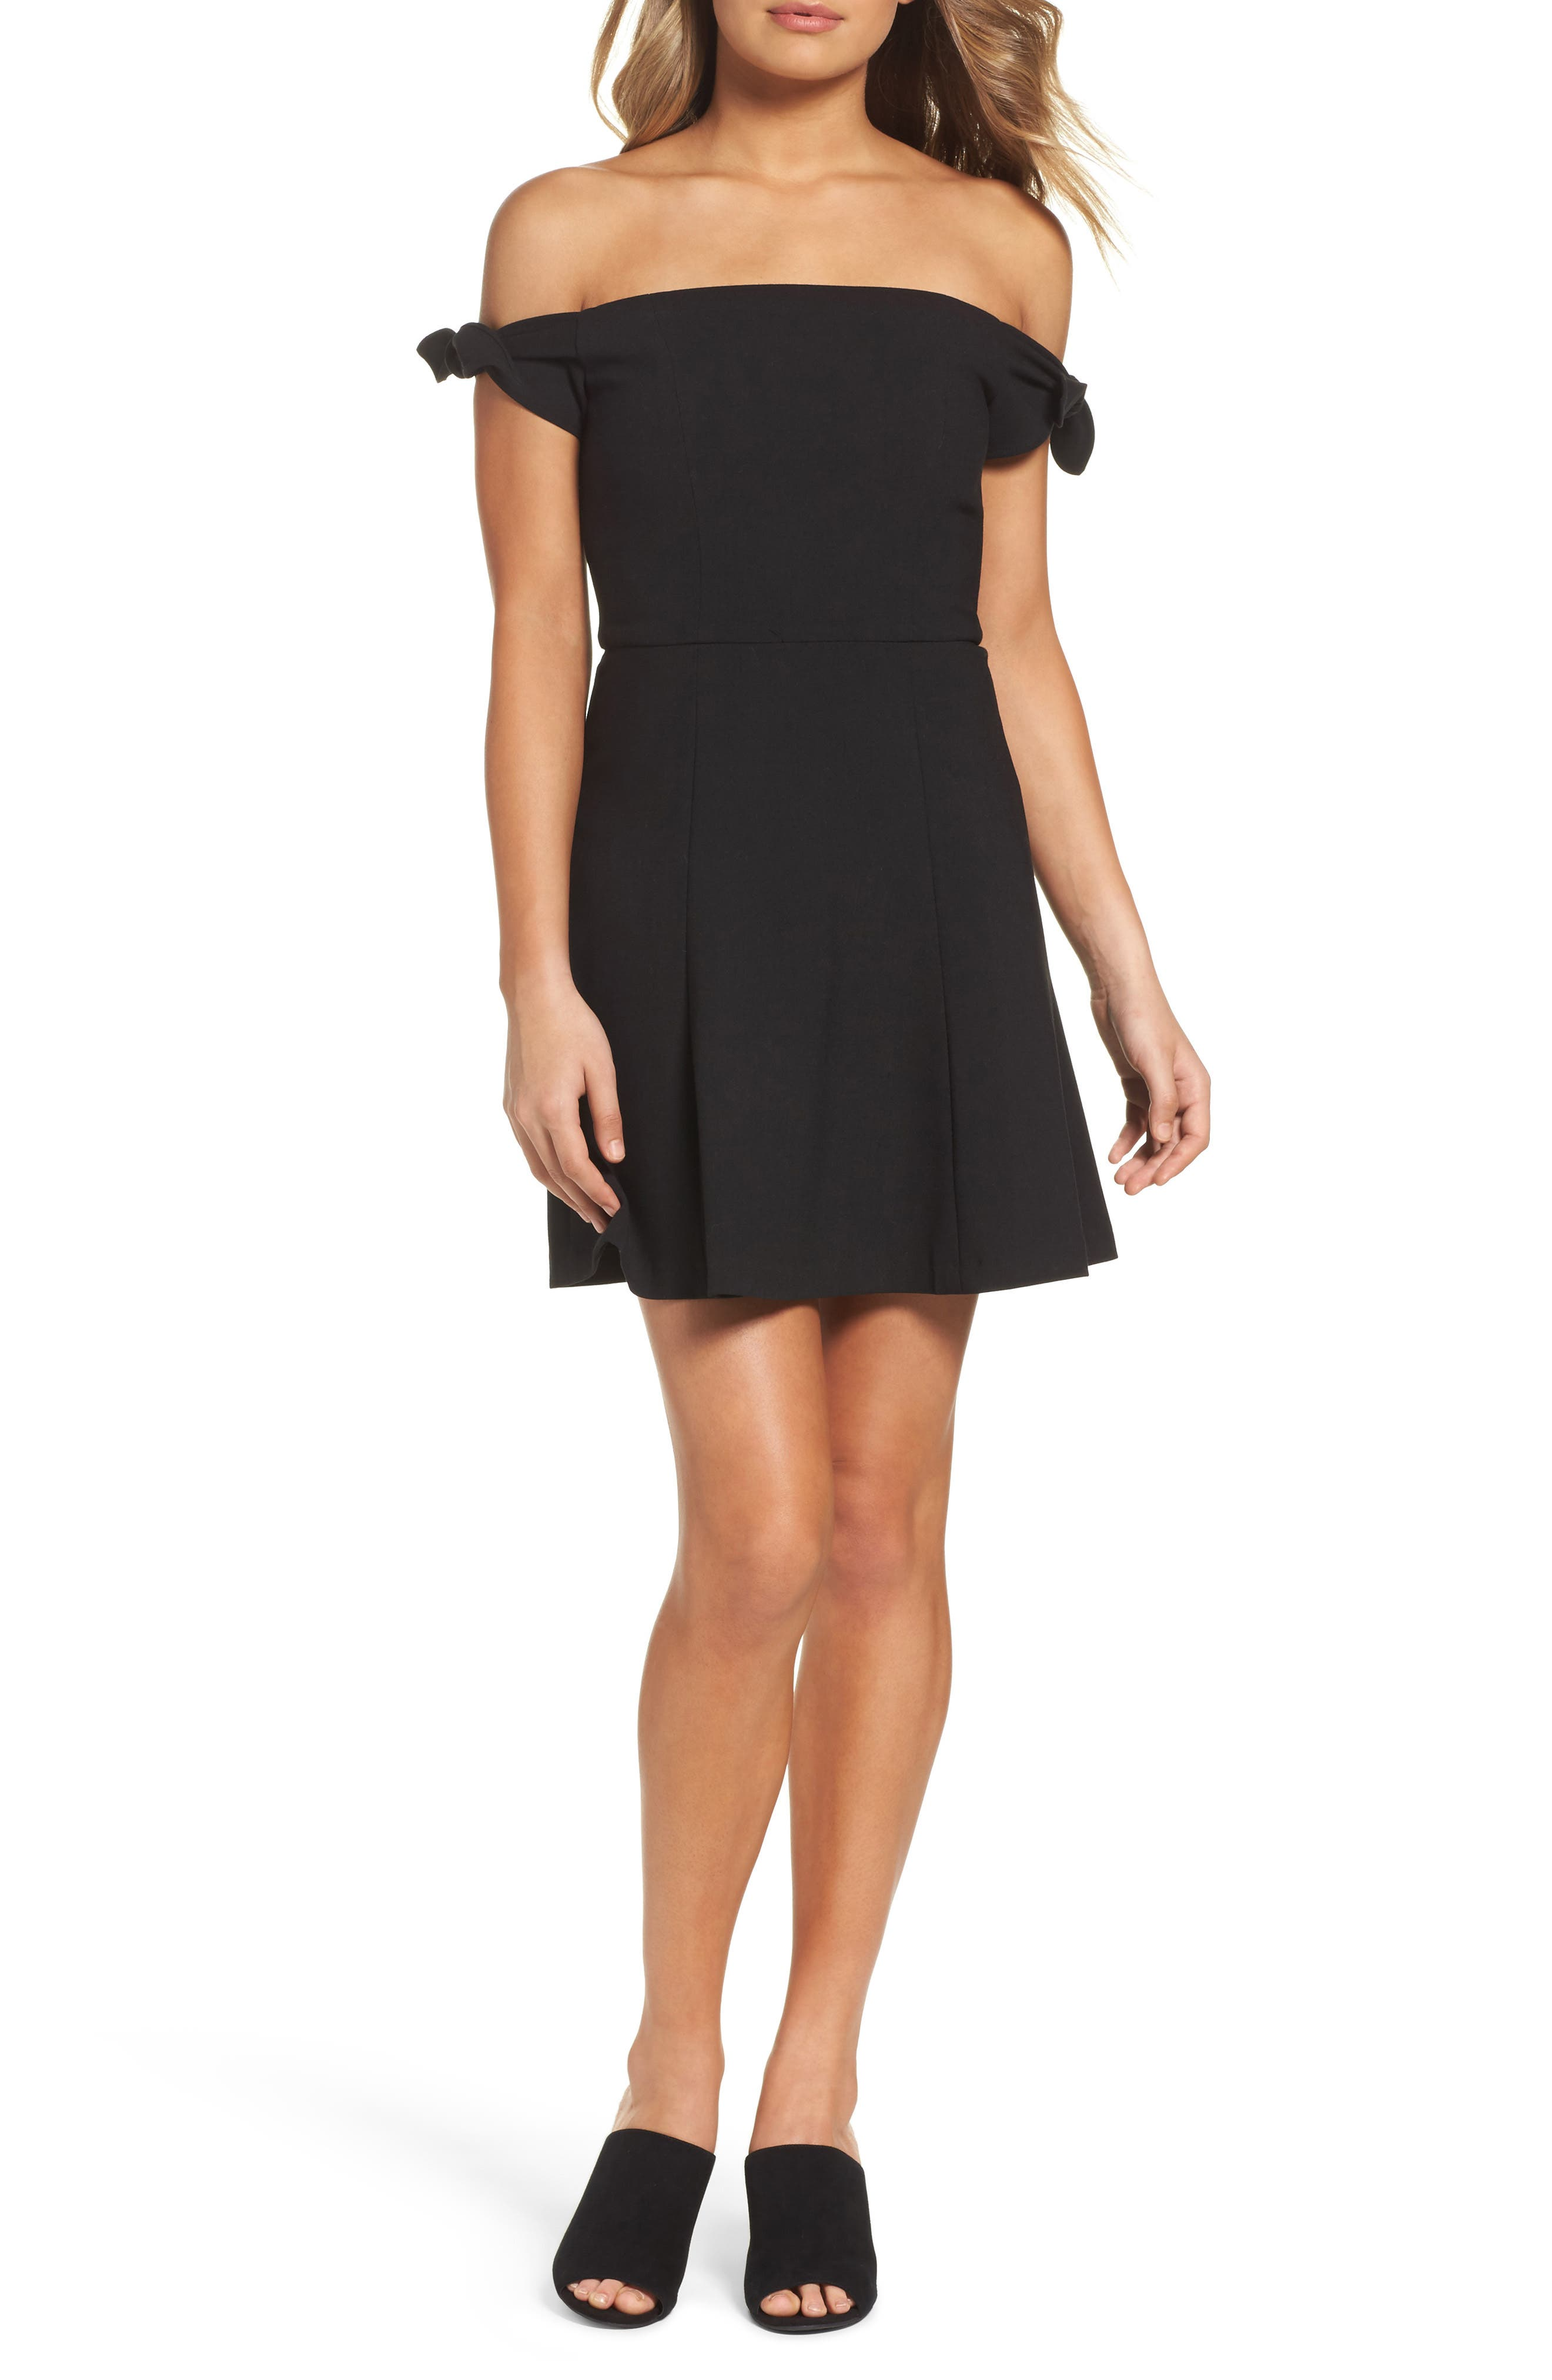 Alternate Image 1 Selected - French Connection Whisper Light Fit & Flare Dress